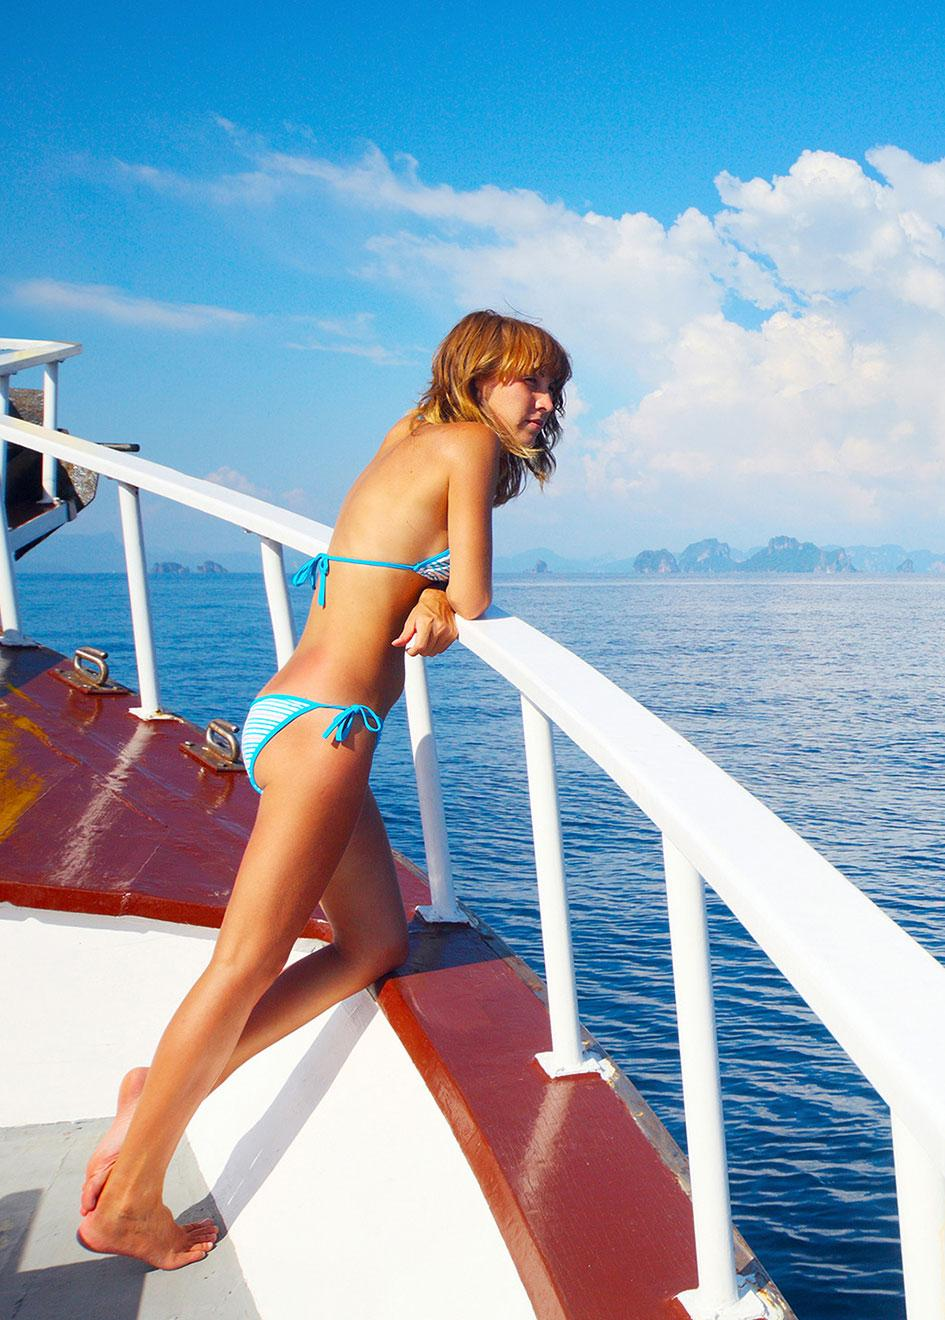 Superyacht Charter Etiquette The Dos And Donts Boat